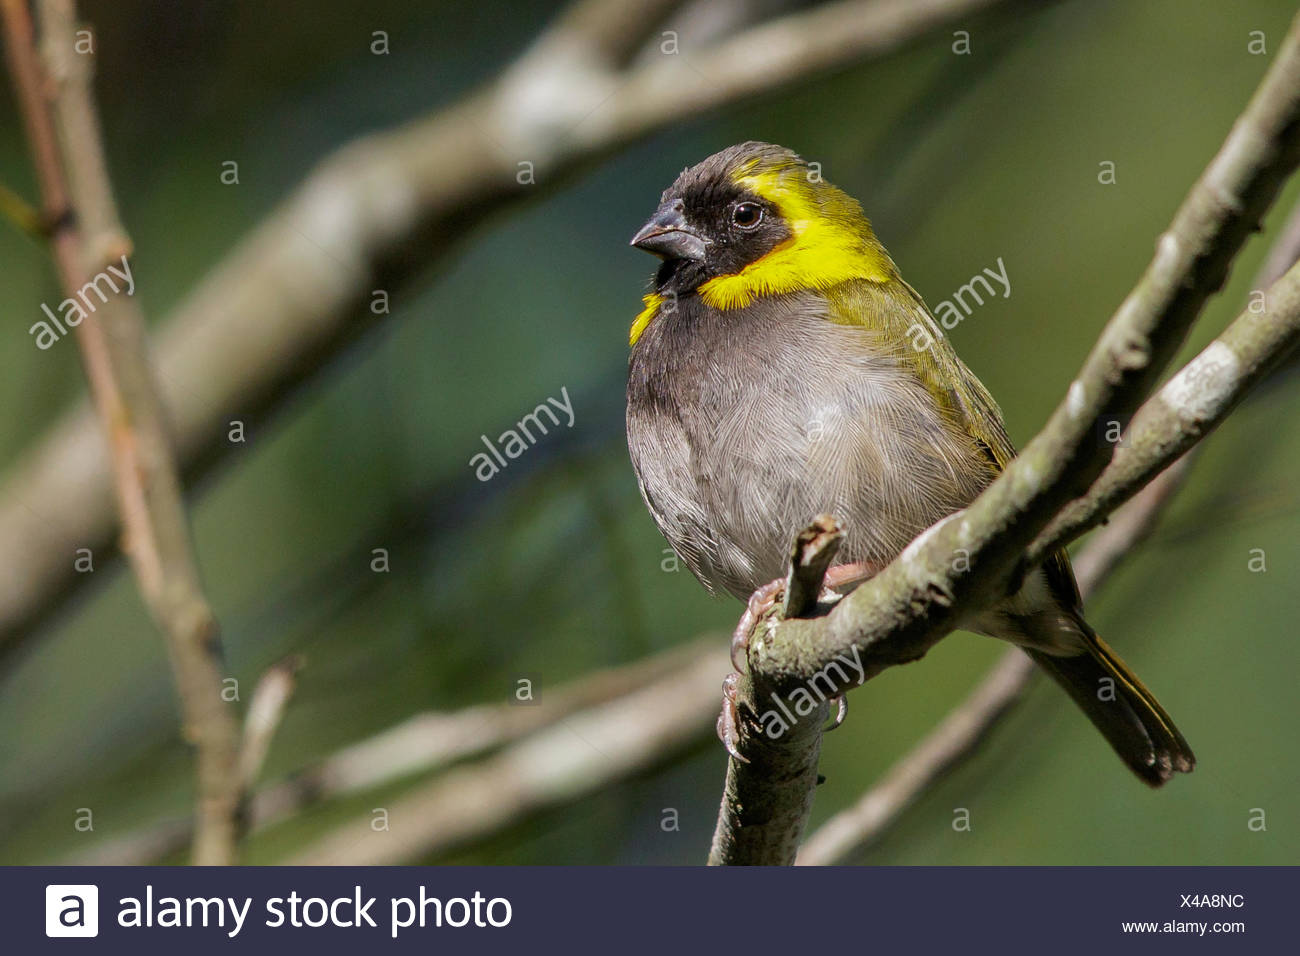 Cuban grassquit (Tiaris canorus) perched on a branch in Cuba. - Stock Image